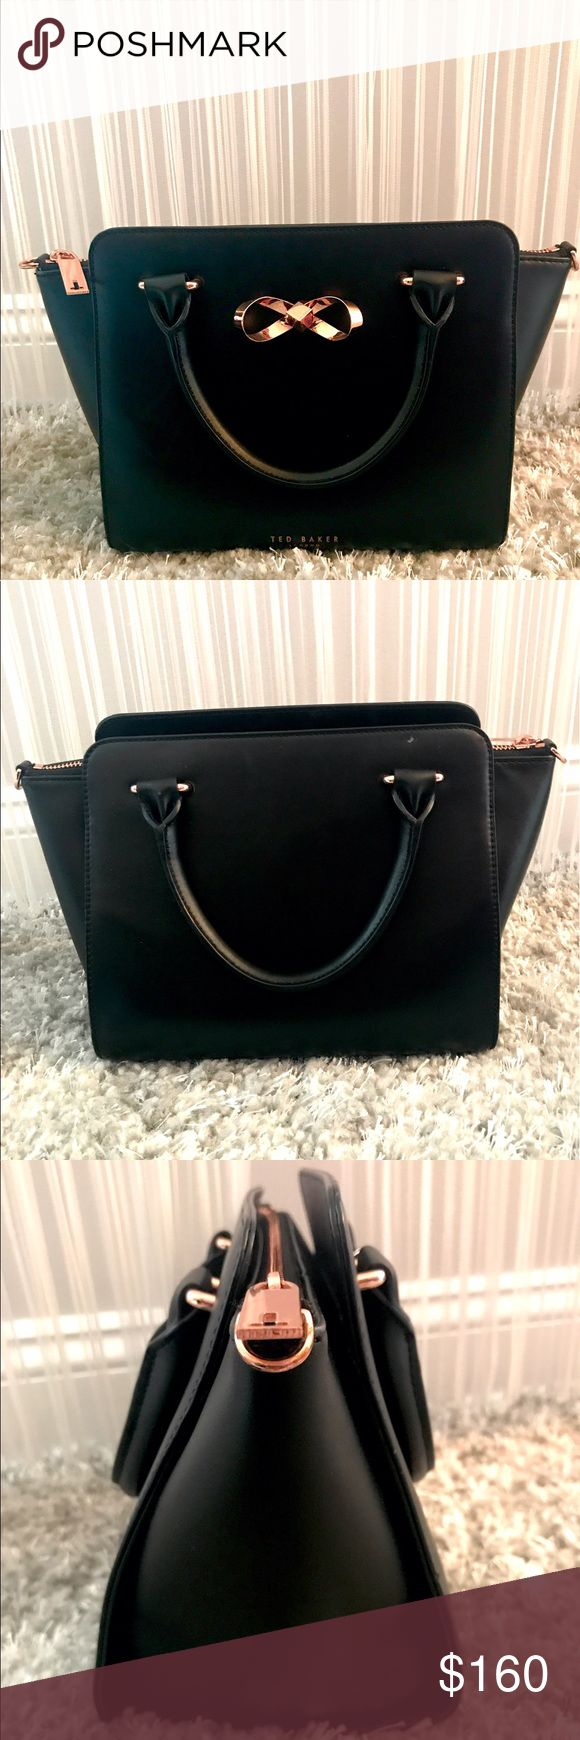 Ted Baker Mini Tote Bag  This is a Ted Baker mini tote black bag originally $350! It has rose gold accents on the zipper and the bow in the front. Ted Baker is written in the middle of the bag on the bottom and has a T on the zipper. It is spacious enough inside with 2 small compartments and one zipper compartment. Perfect for any outfit you choose!  Ted Baker Bags Totes